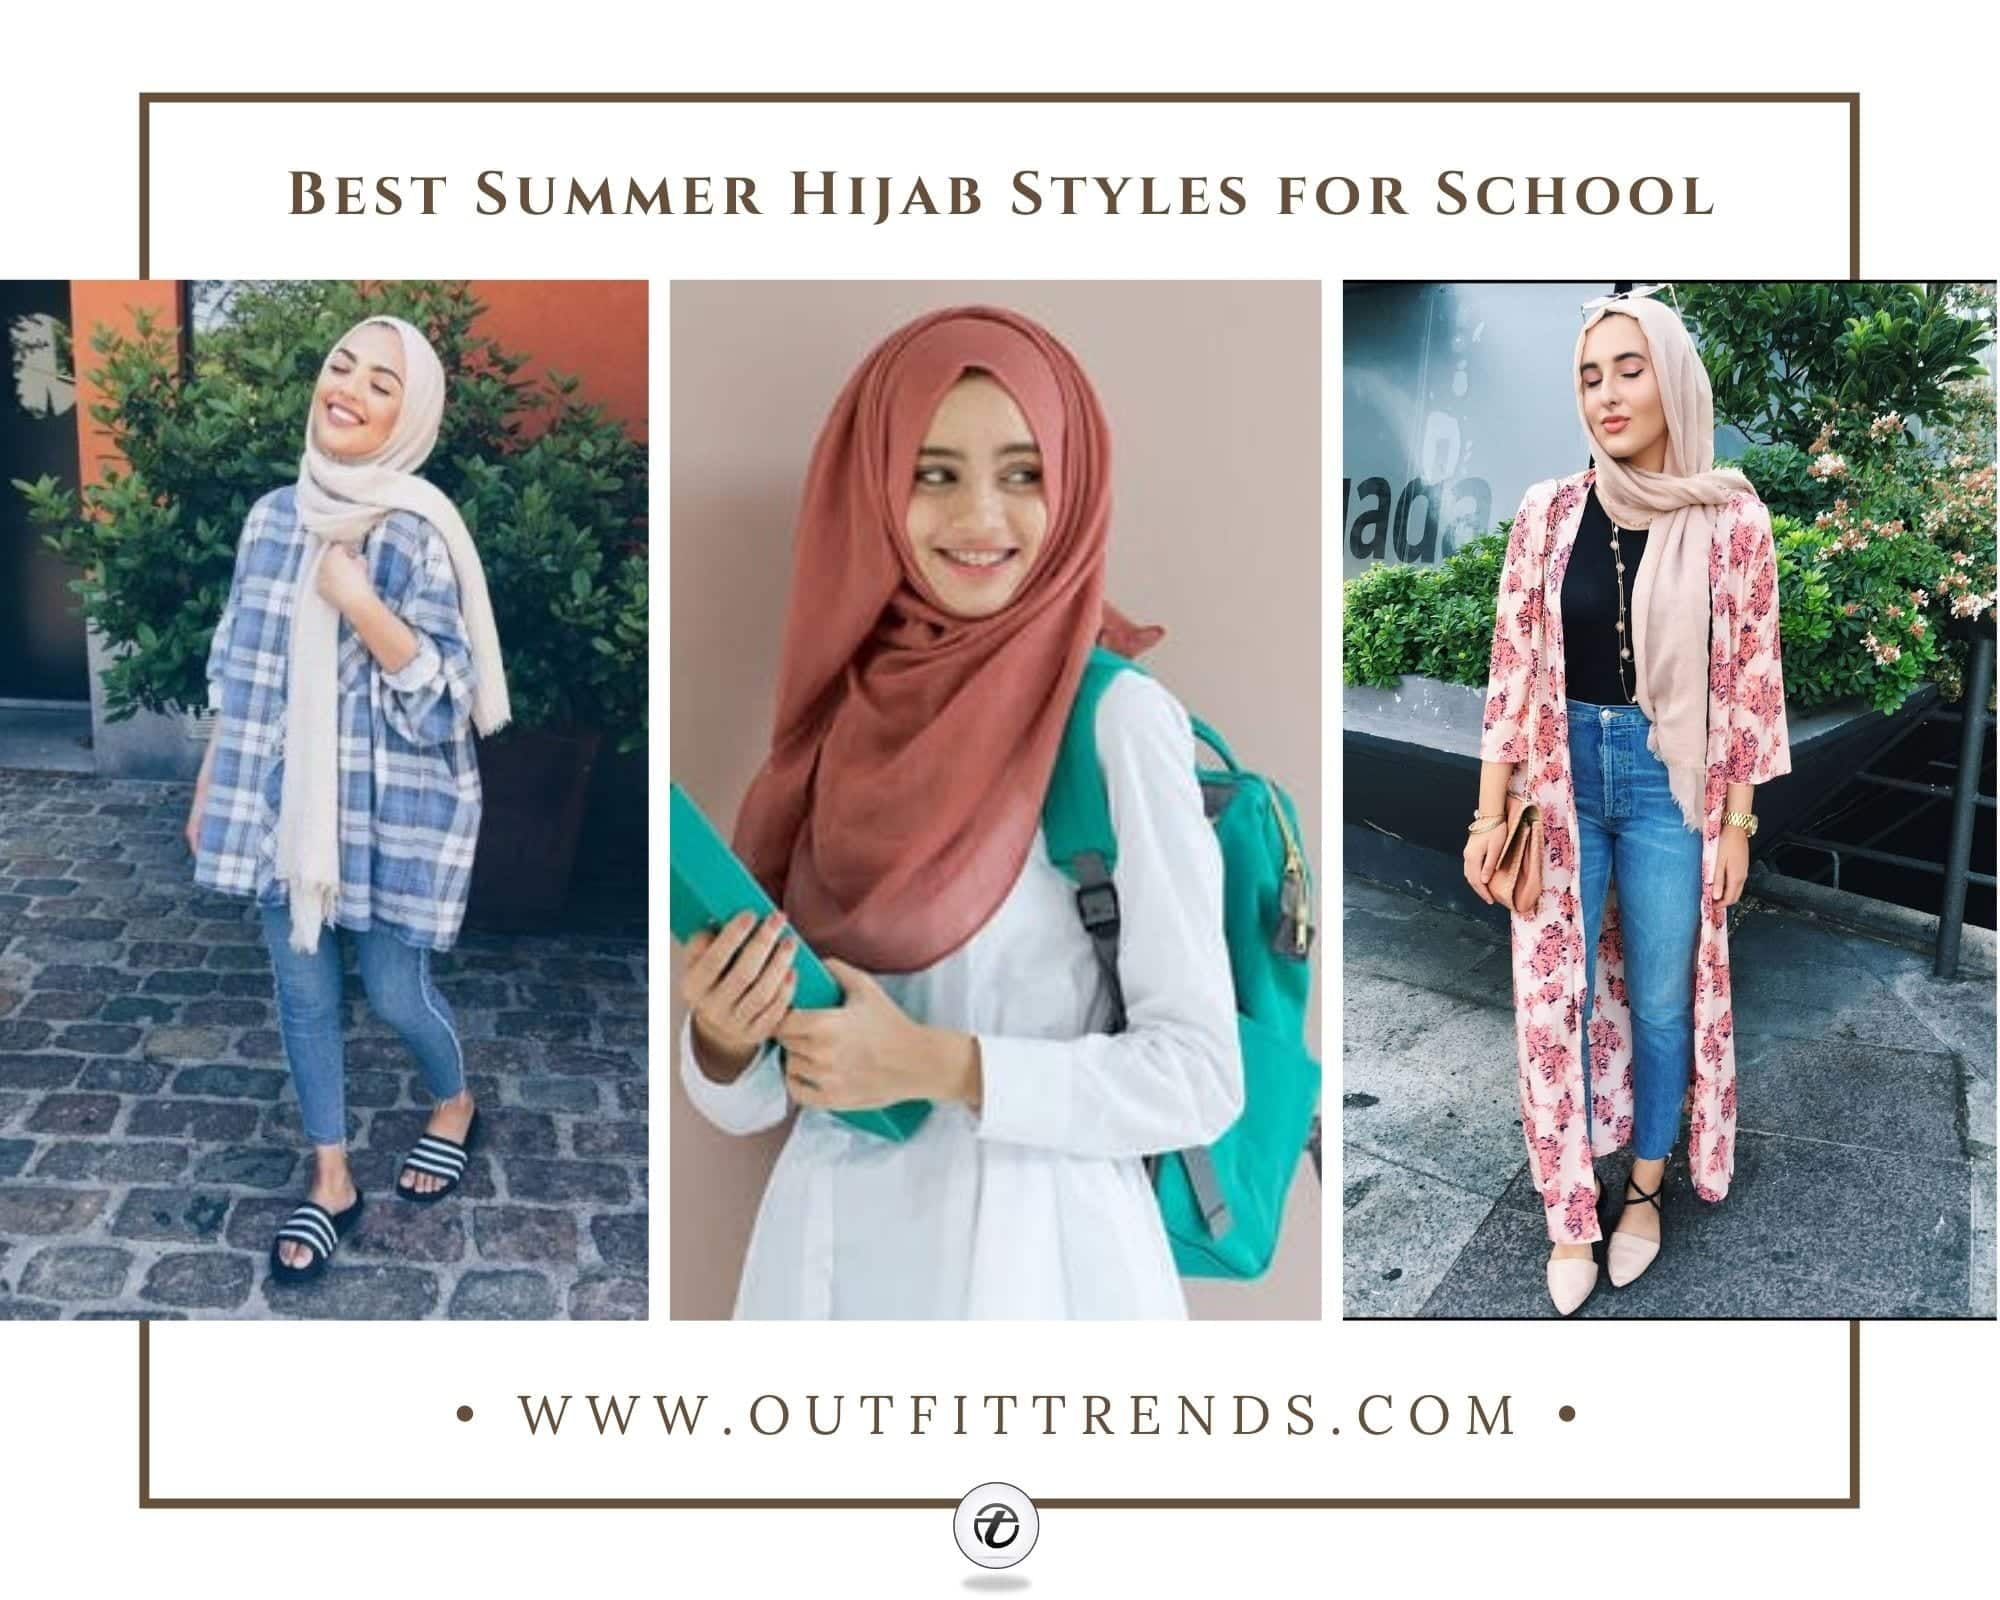 14 Best Summer Hijab Styles Outfits To Wear For School